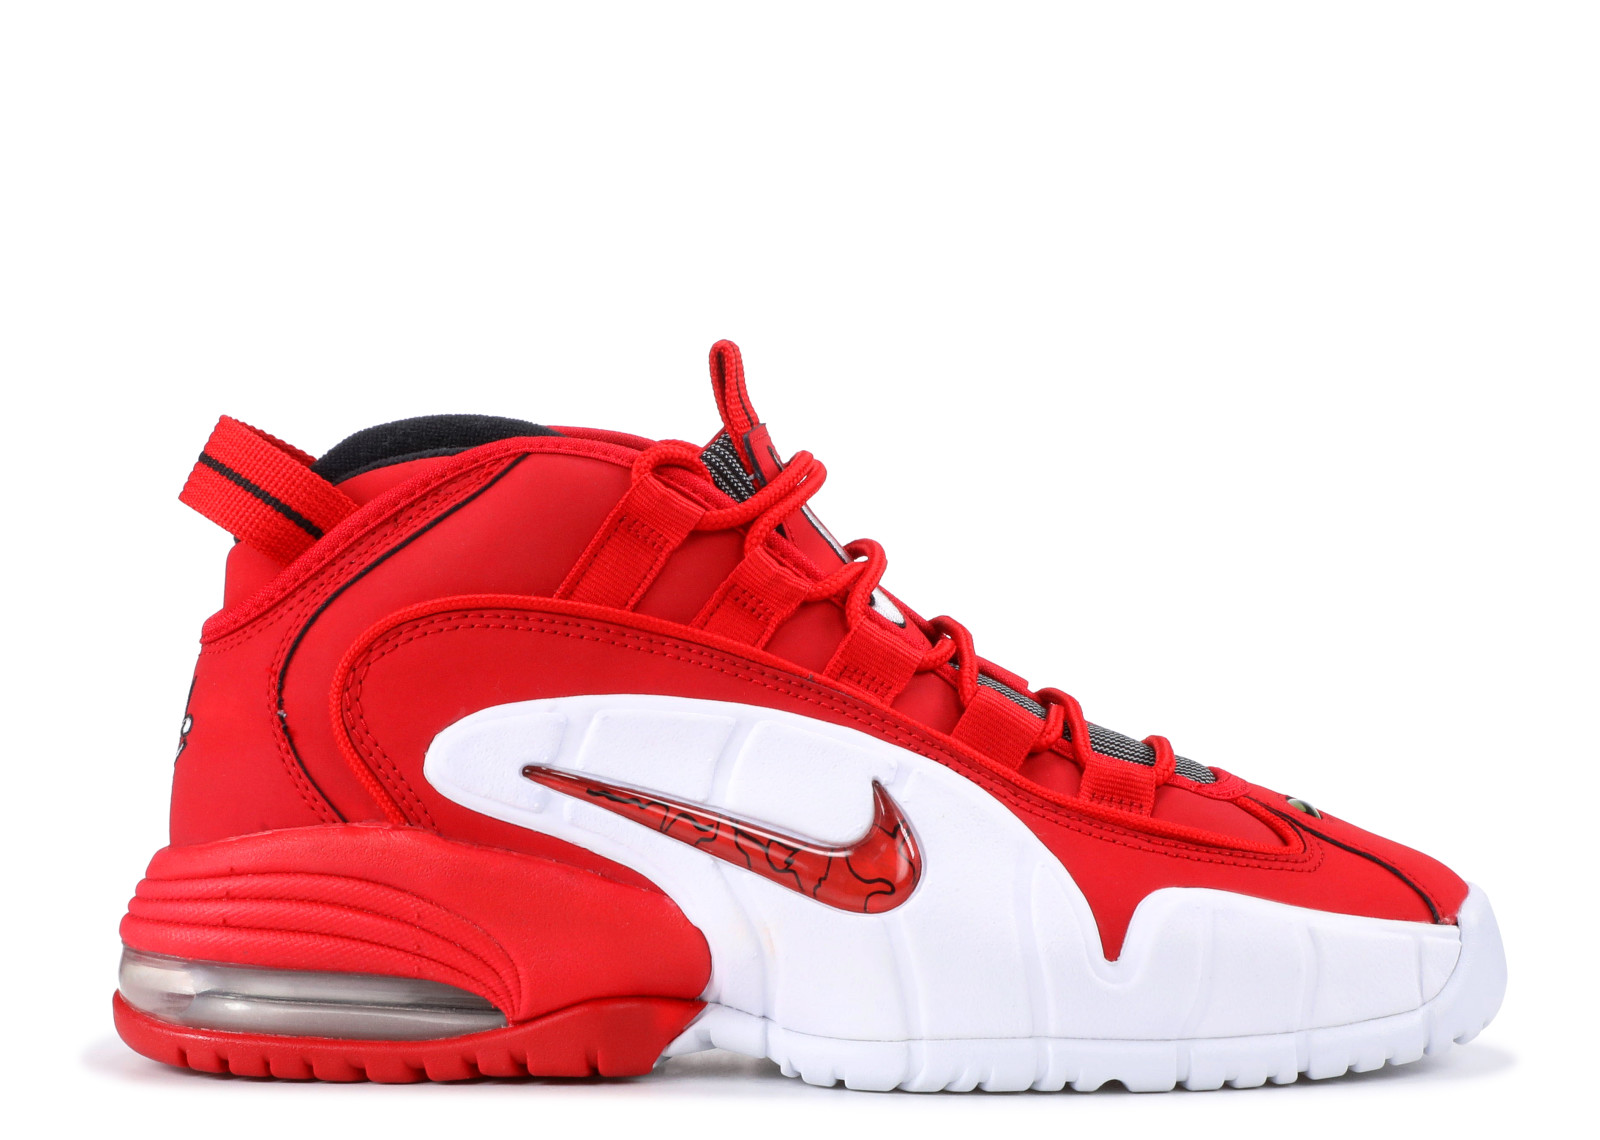 Nike Air Max Penny red/white -